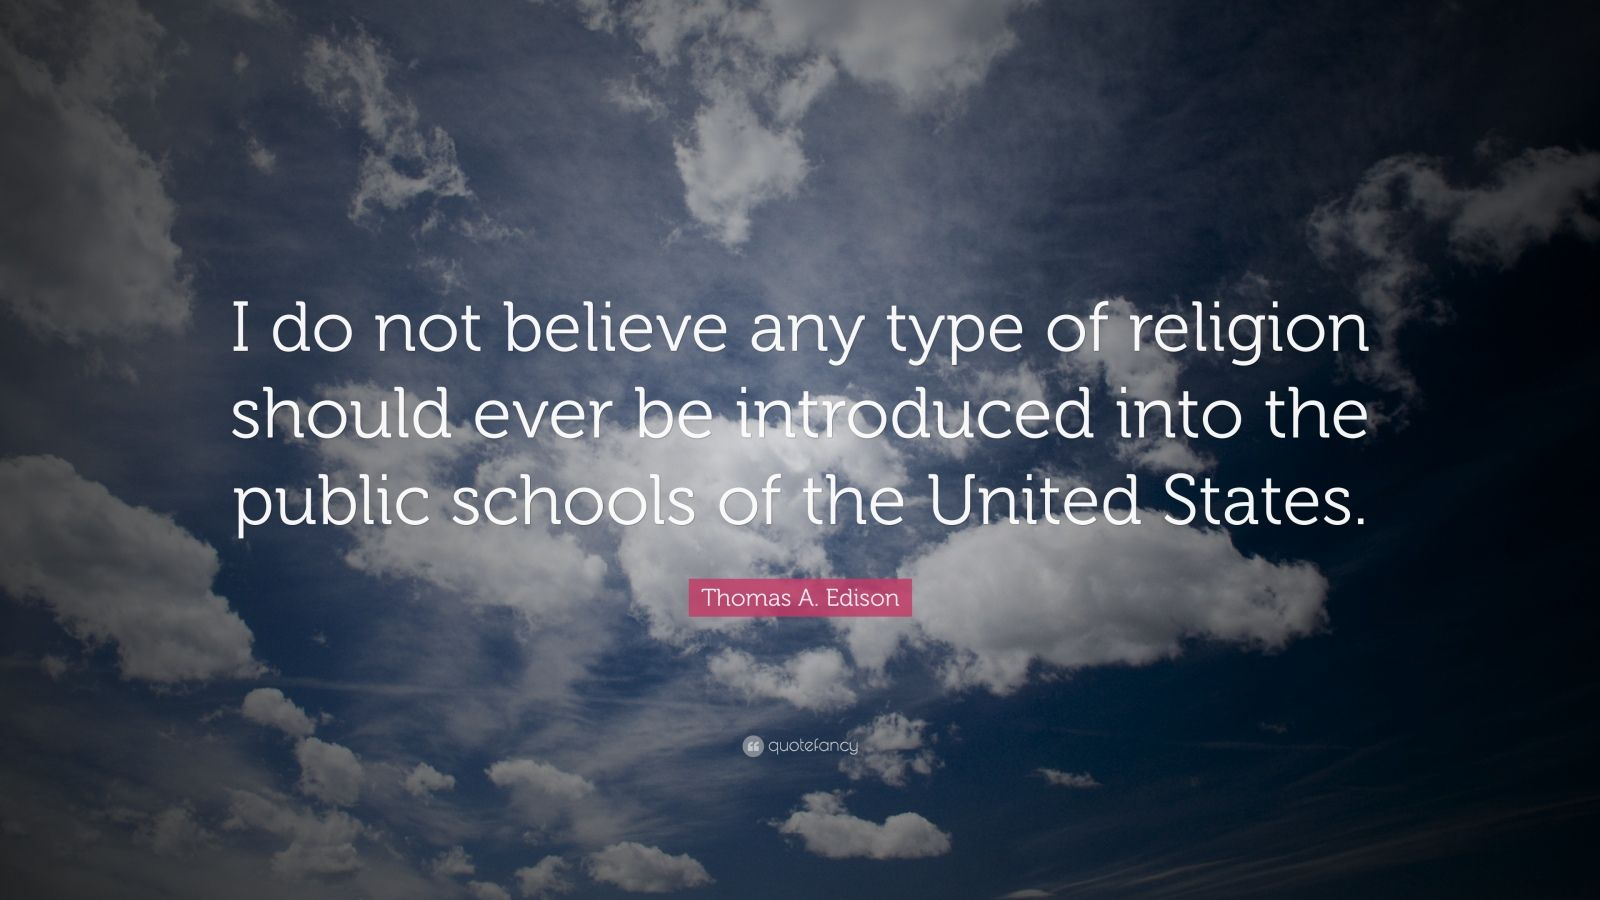 """Thomas A. Edison Quote: """"I do not believe any type of religion should ever be introduced into the public schools of the United States."""""""